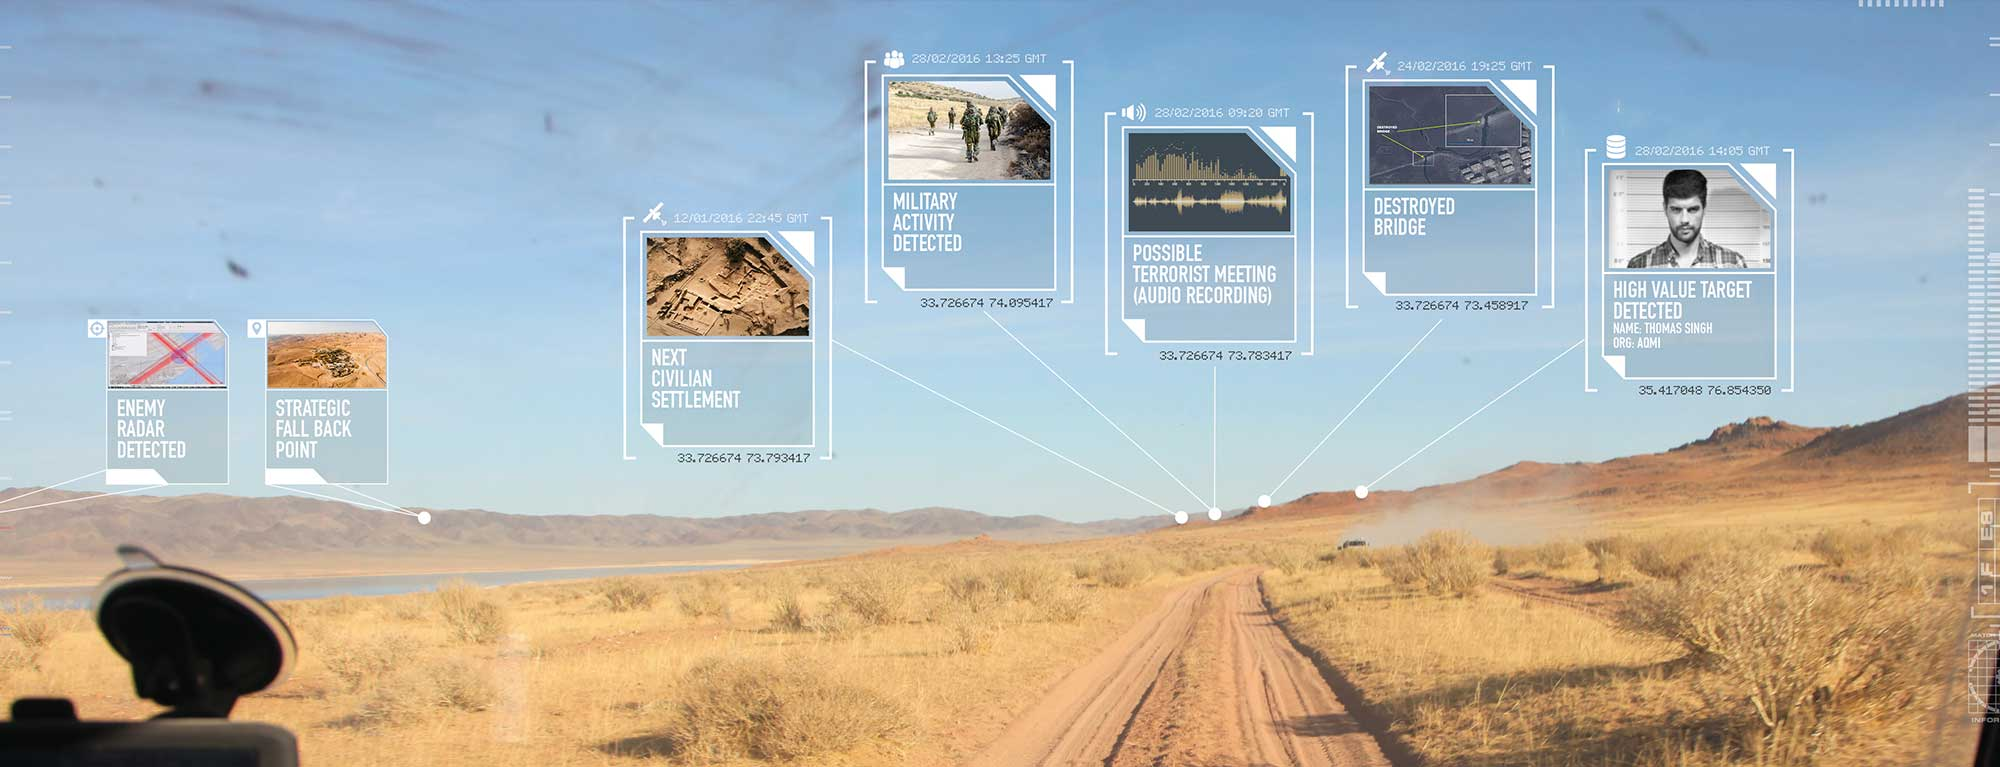 Airbus Intelligence delivers armed forces the complete picture for informed decision-making